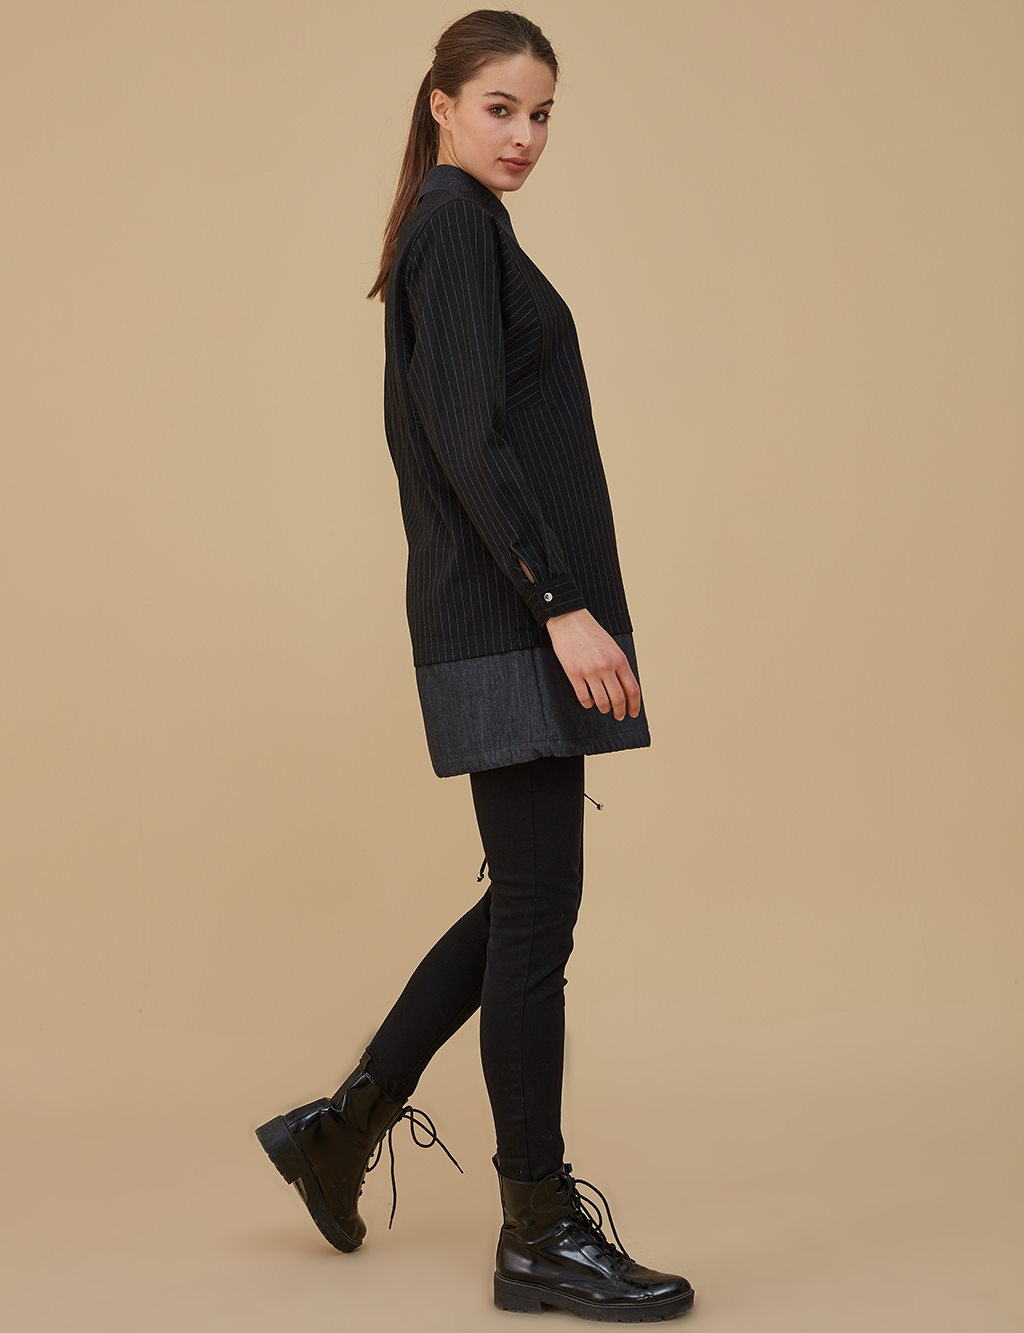 Ruched Shirt With Pocket Detailed A9 11020 Black